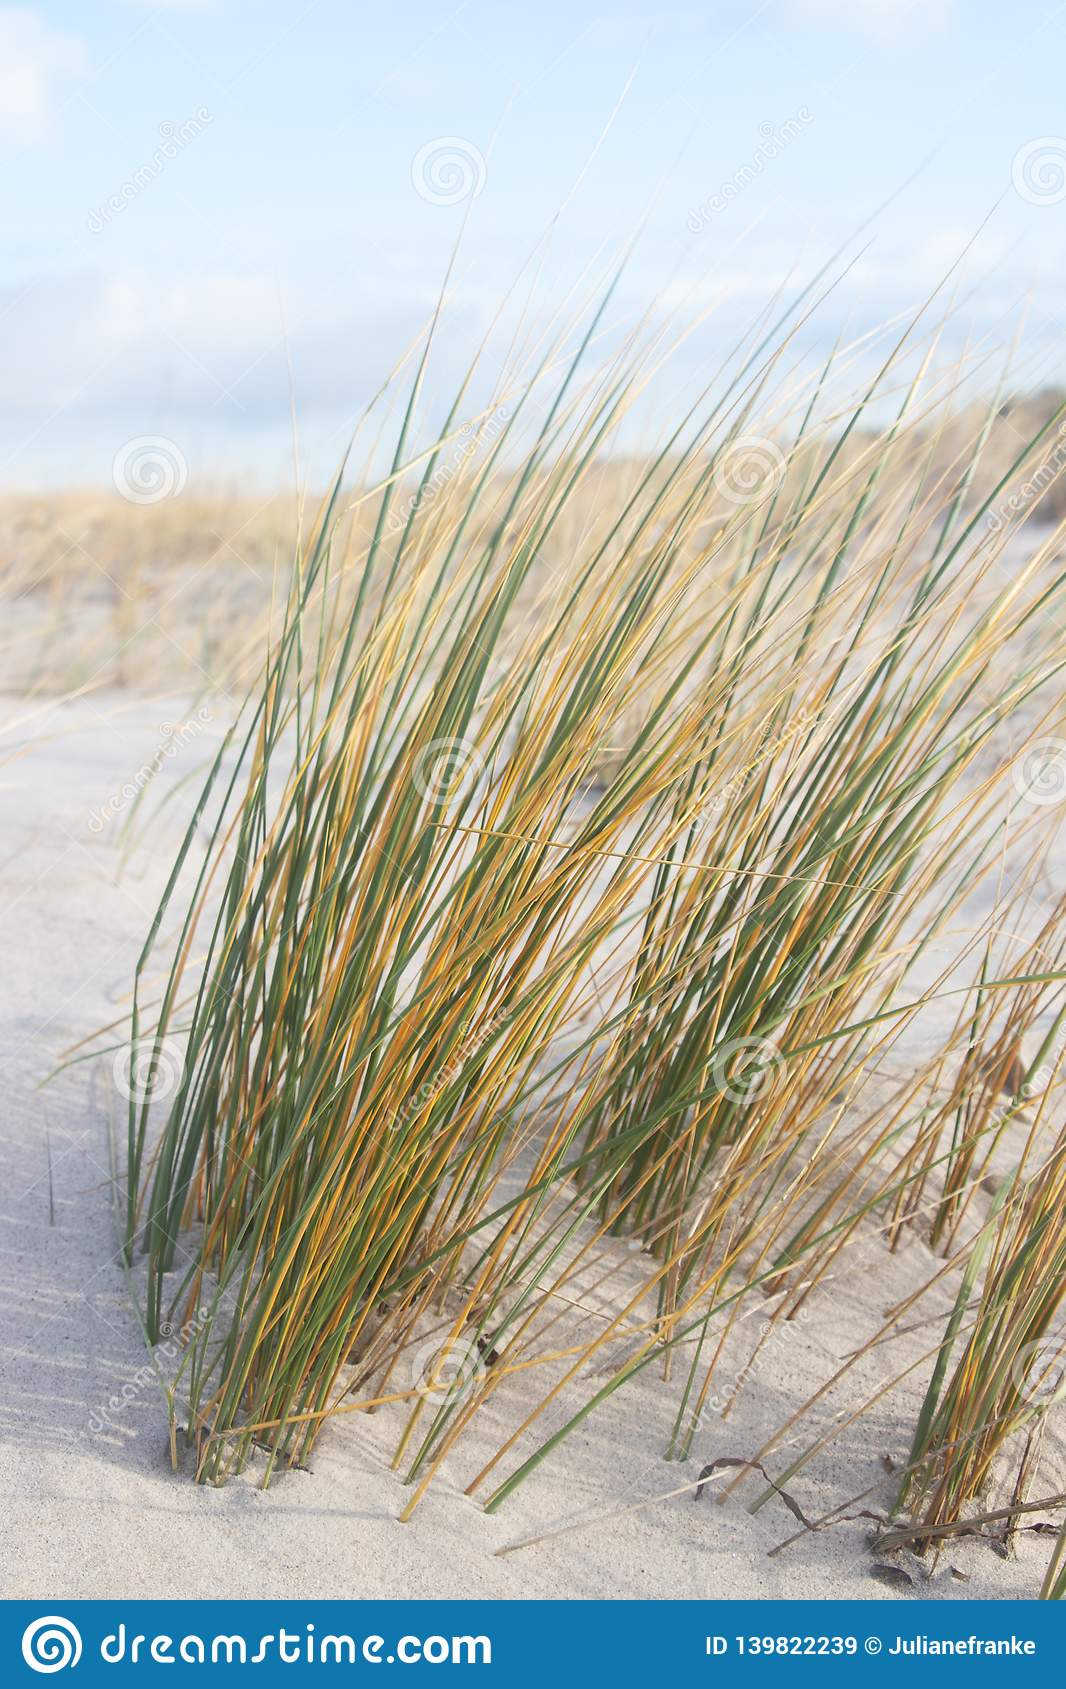 Grass at sandy dune, baltic sea